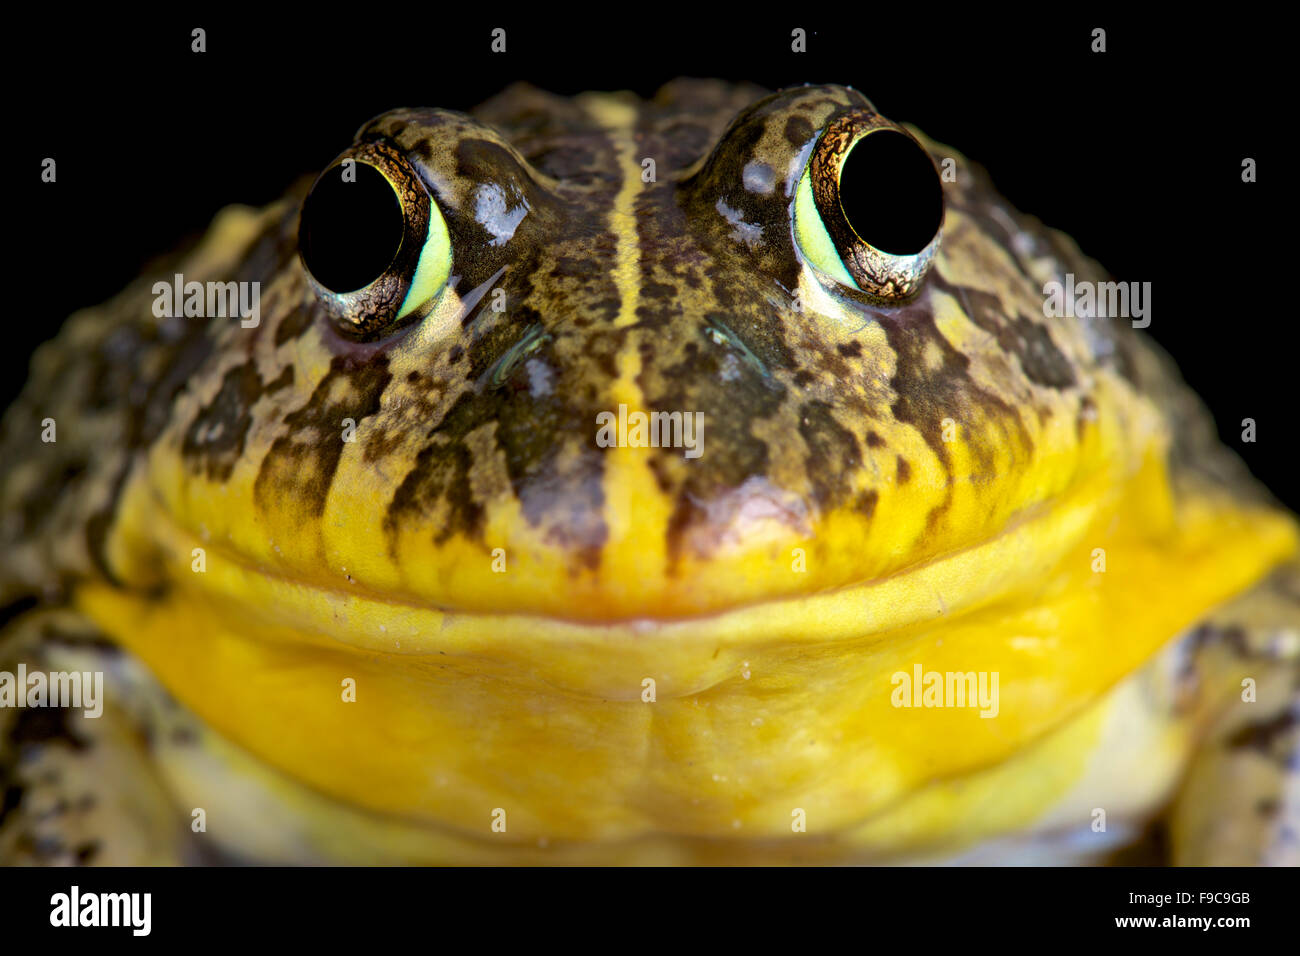 Bullfrog comestibles (Pyxicephalus edulis) Photo Stock